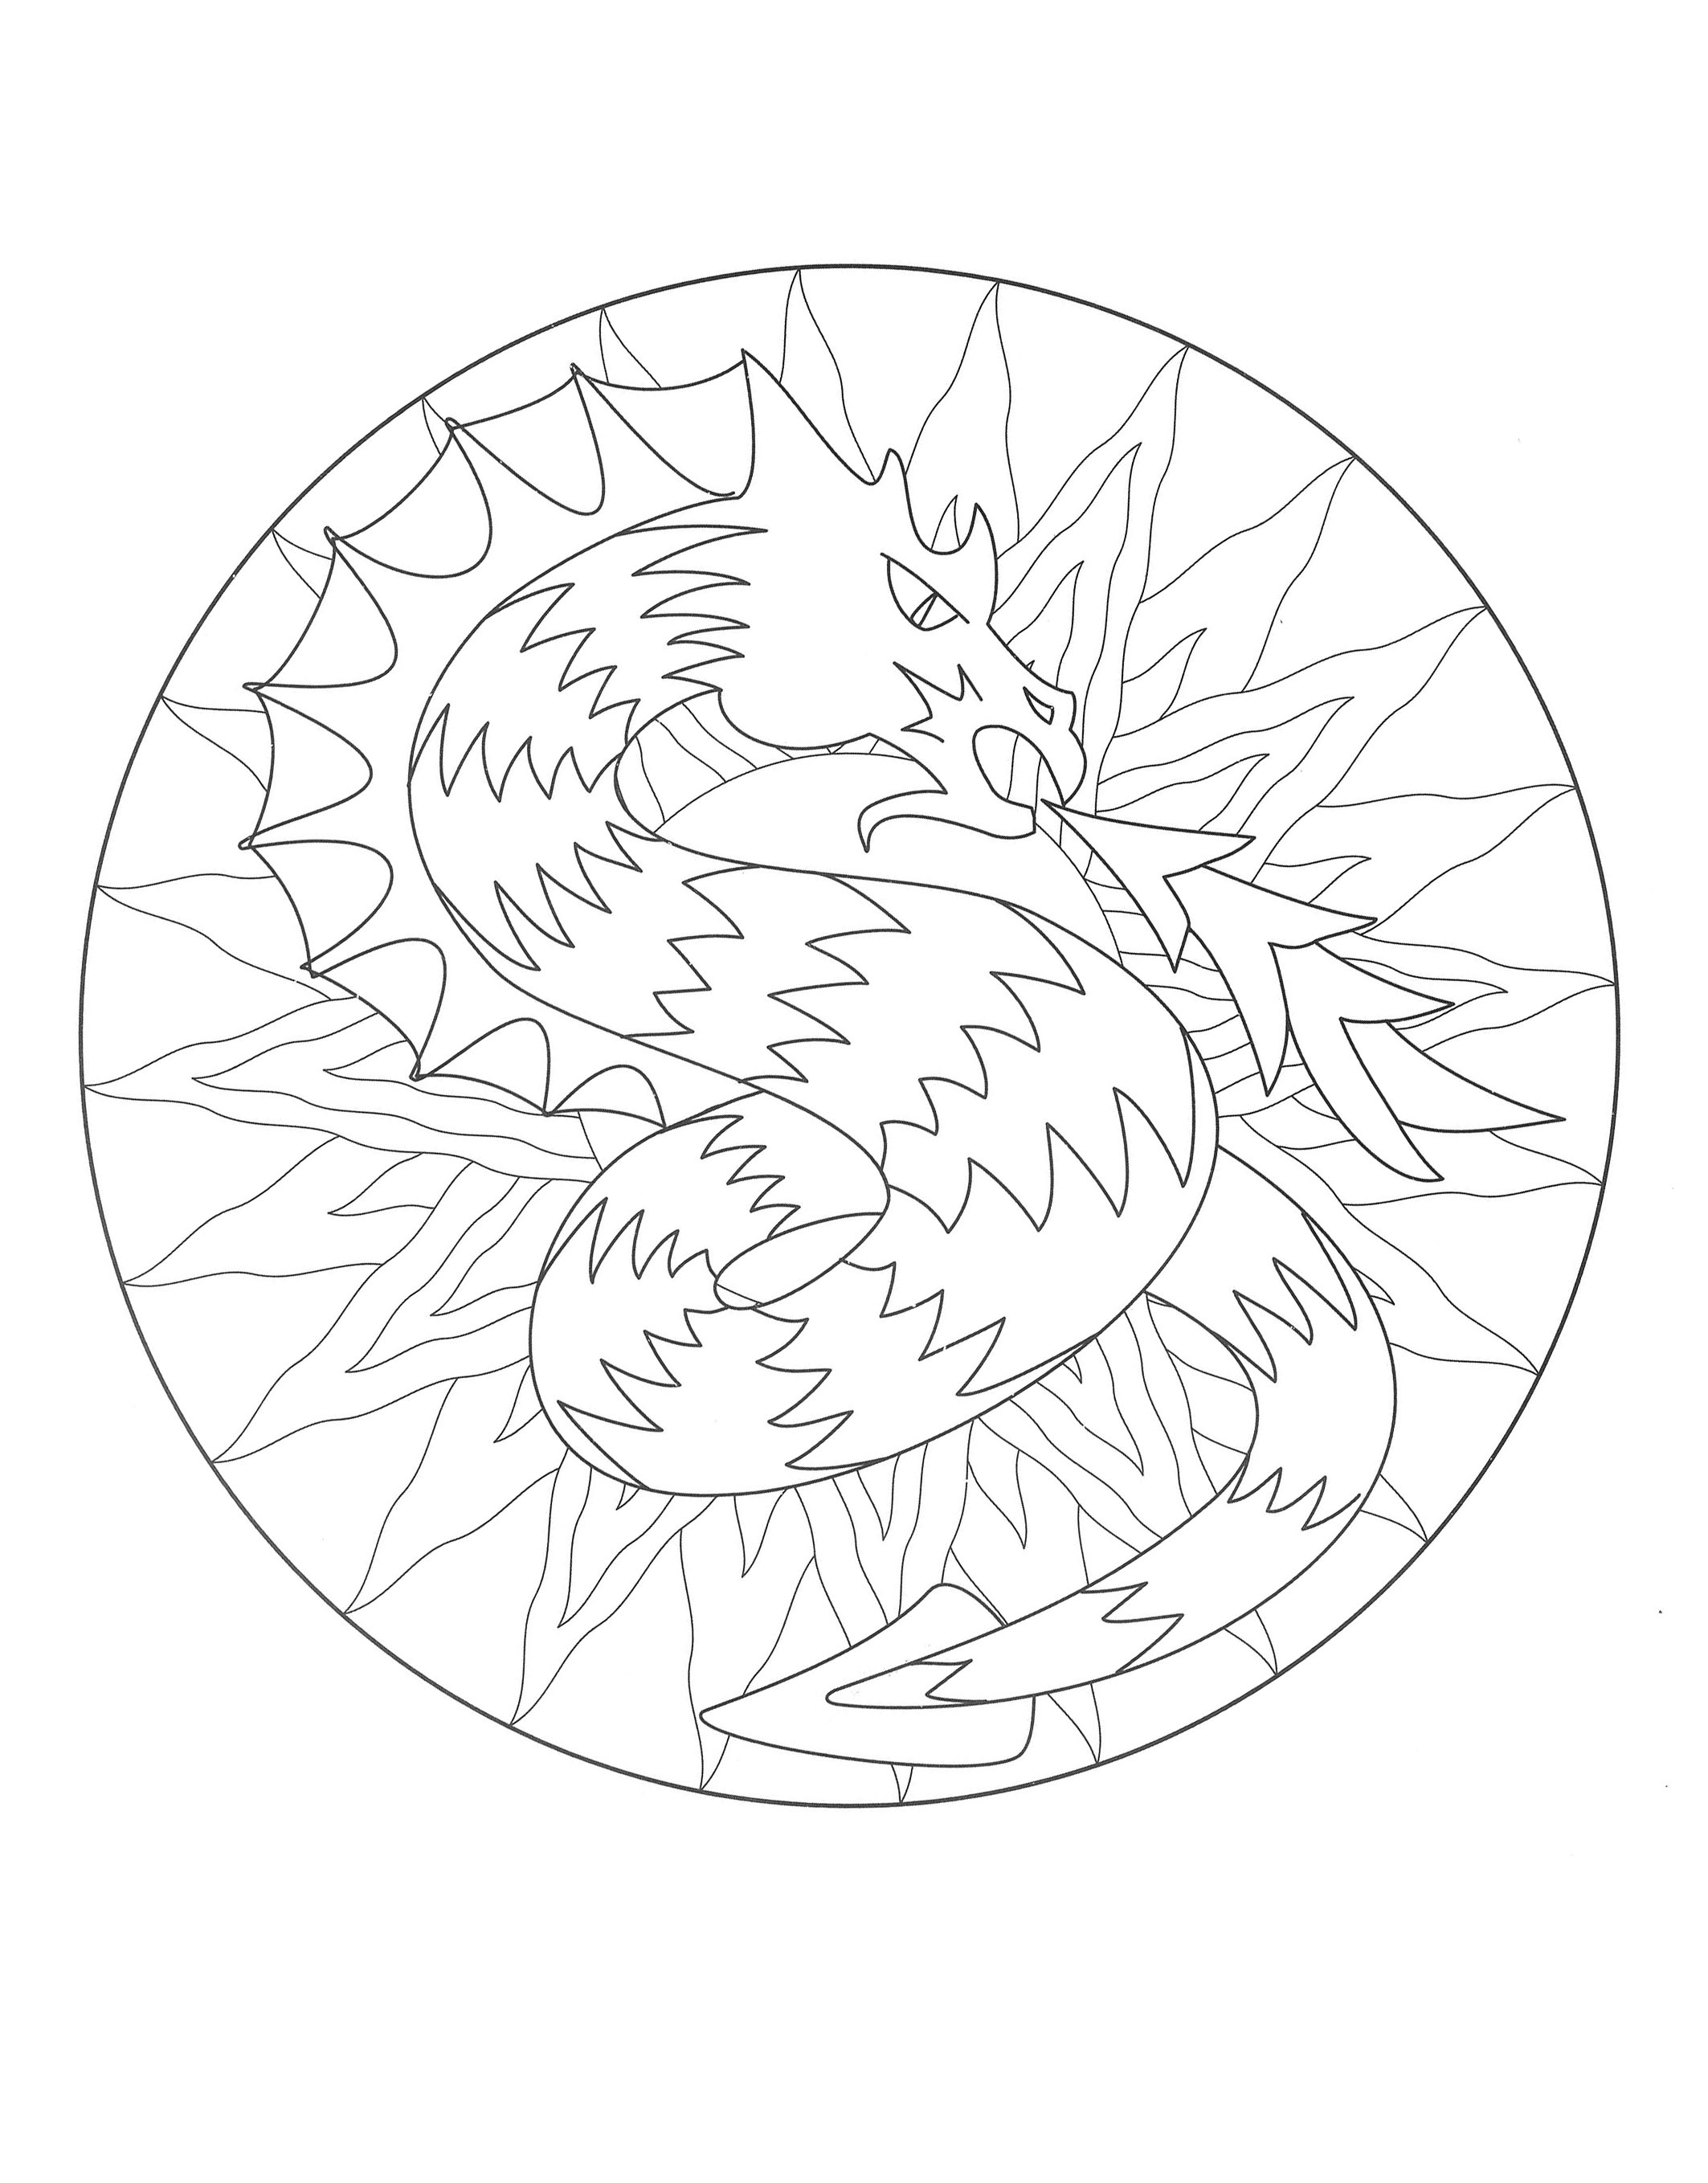 Mandala dragon 3 mandalas coloriages difficiles pour - Coloriages de dragons ...